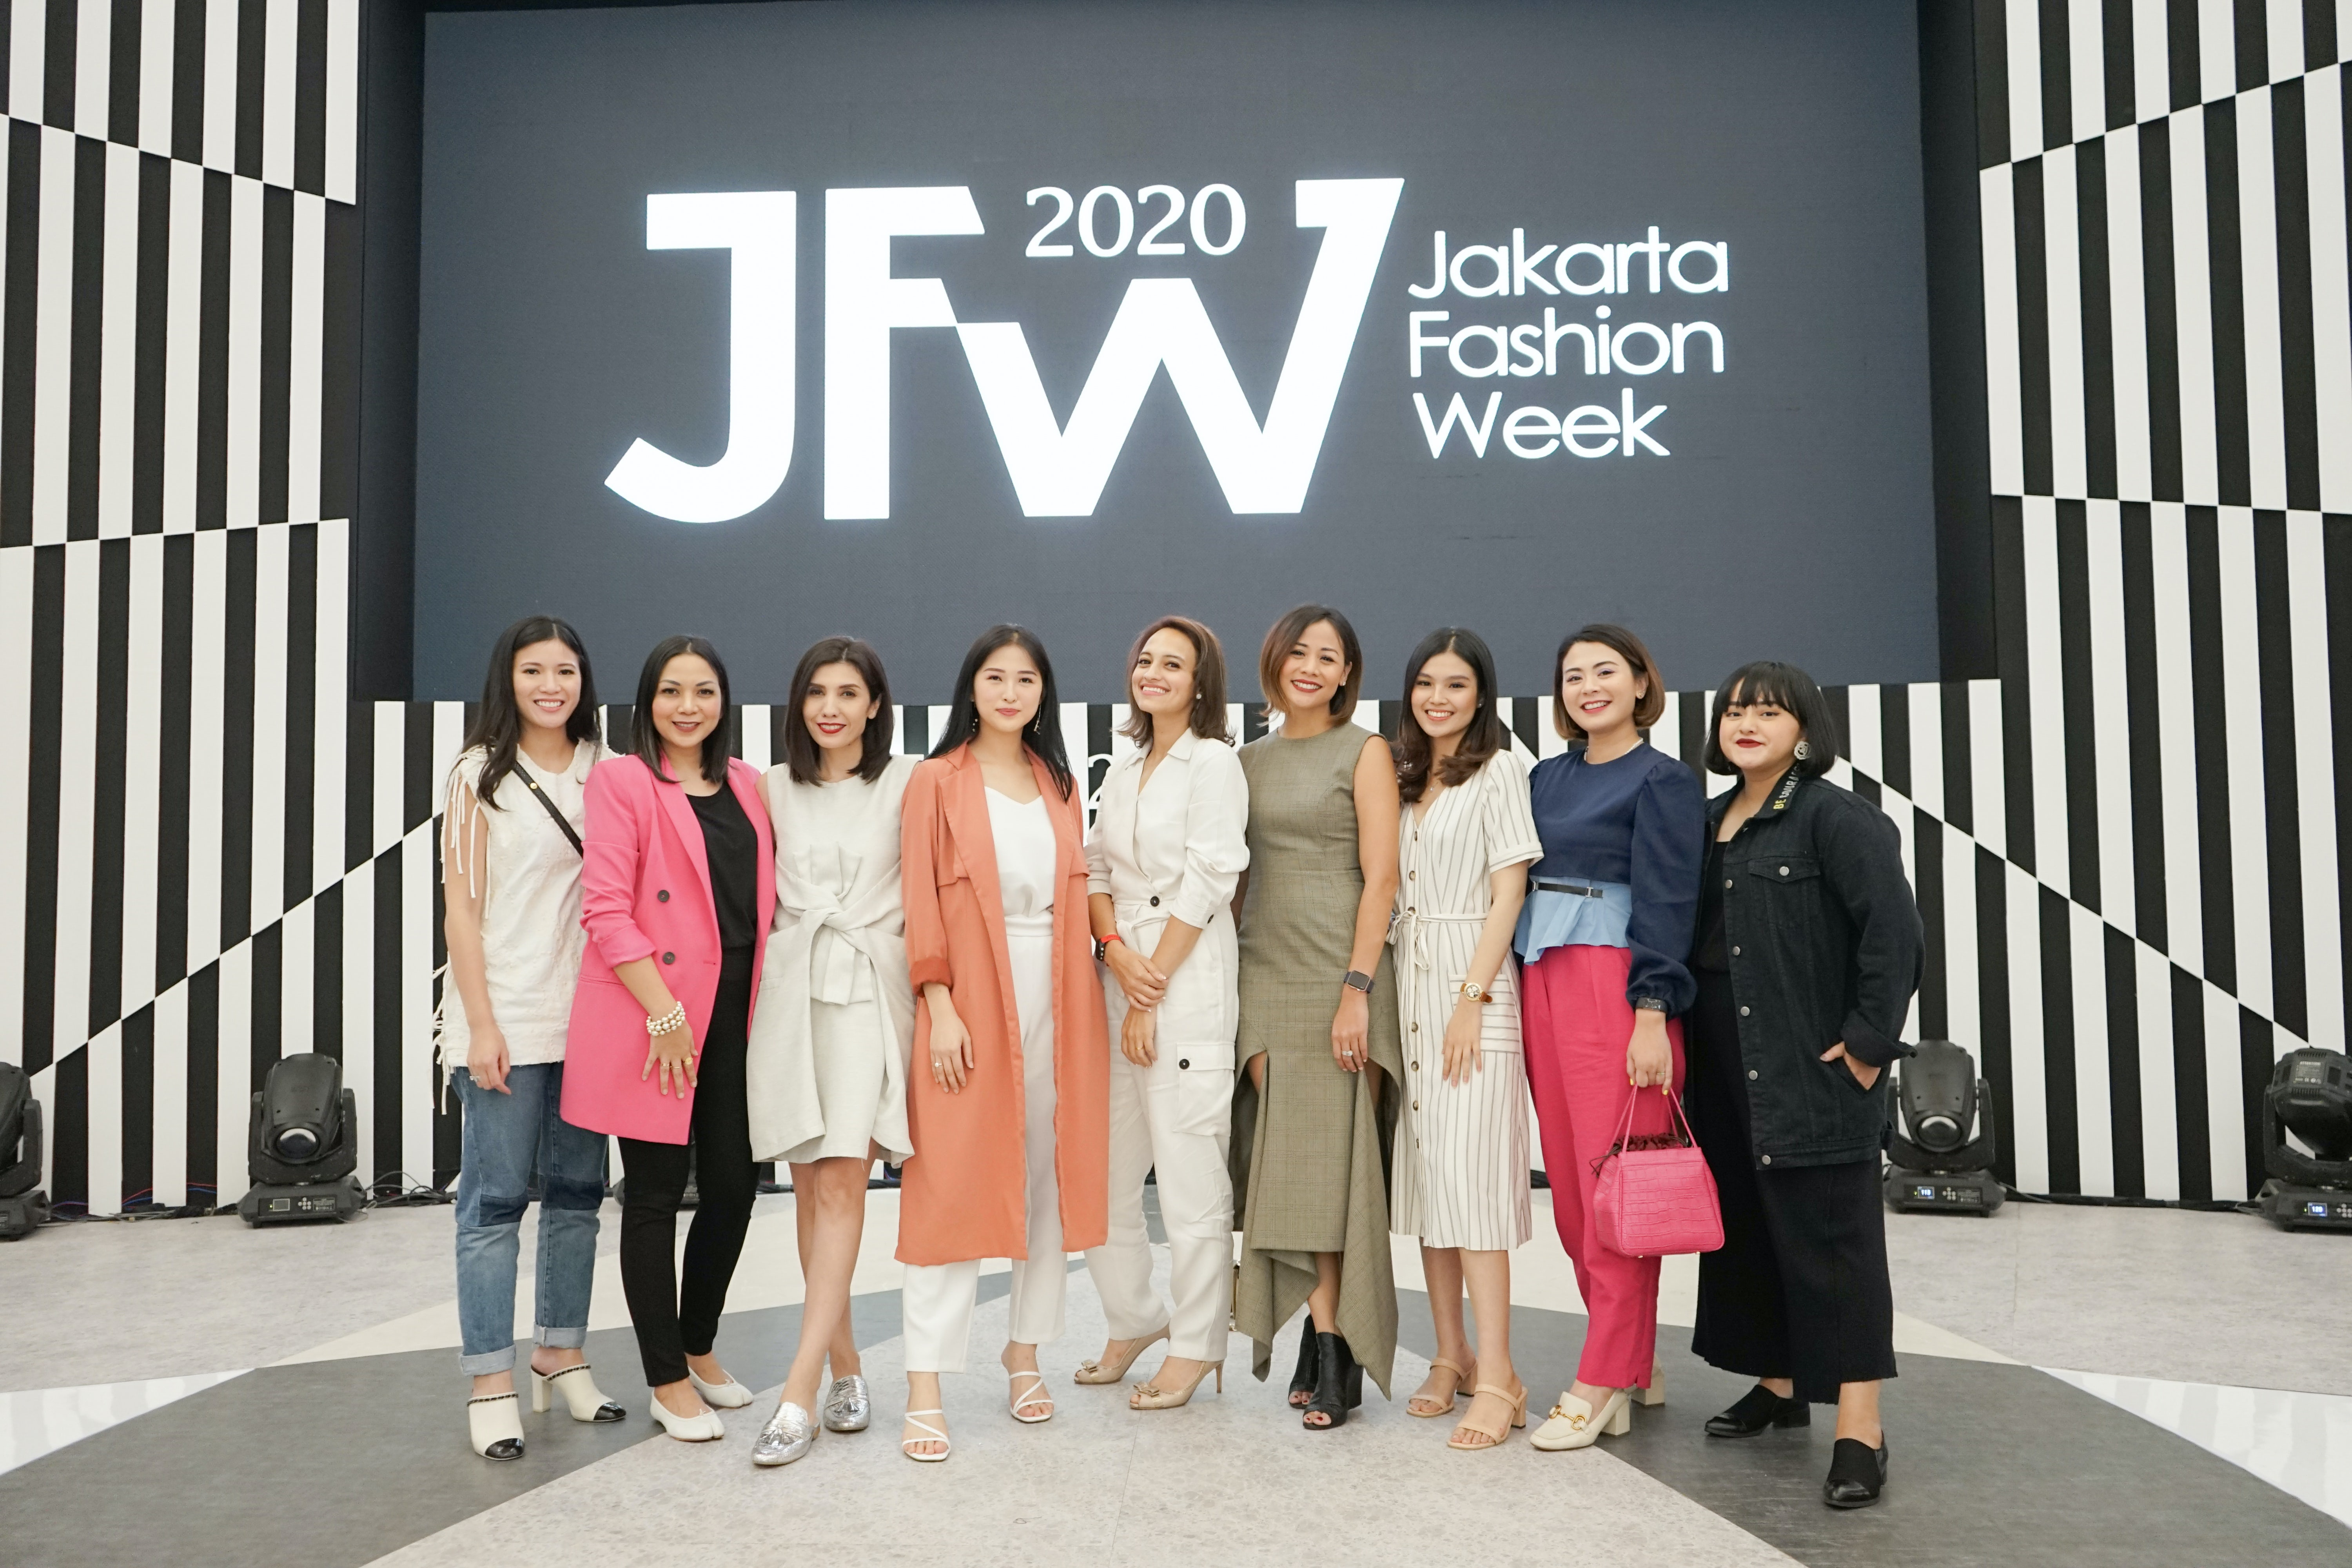 Tinkerlust was a participant of the Jakarta Fashion Week 2020 upcycling unsold second-hand products. Tinkerlust.